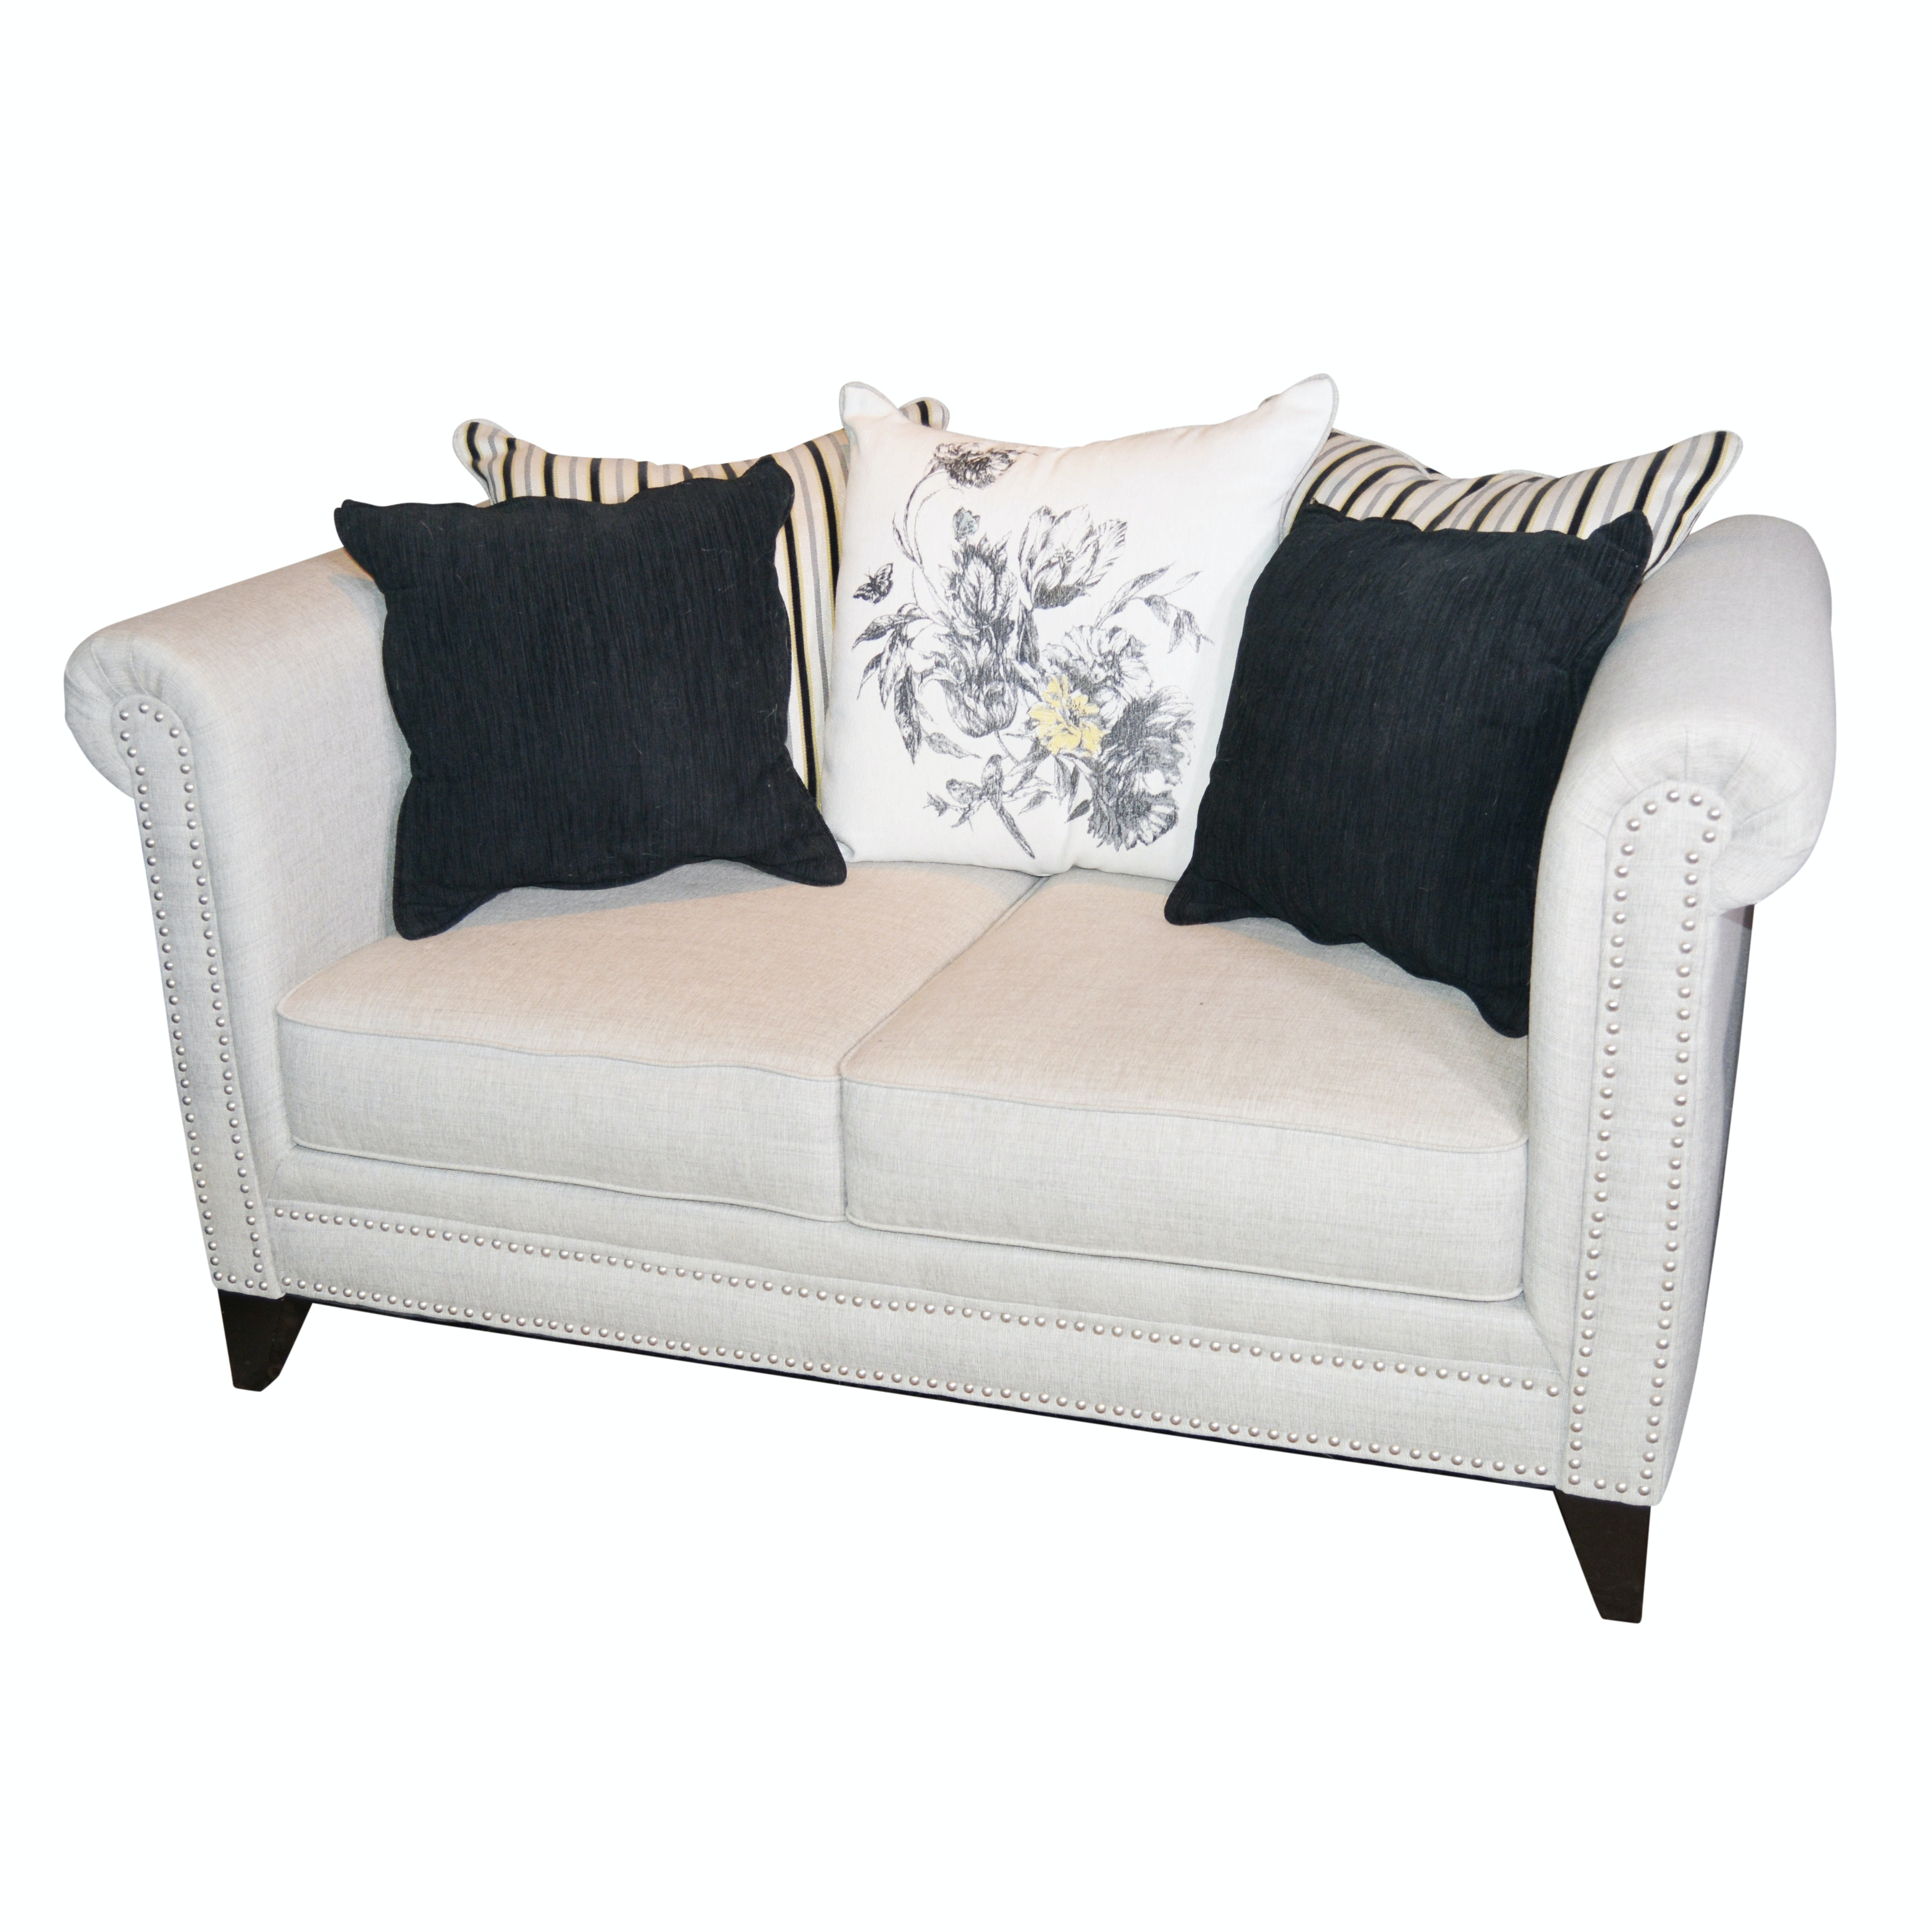 Gray Upholstered Love Seat